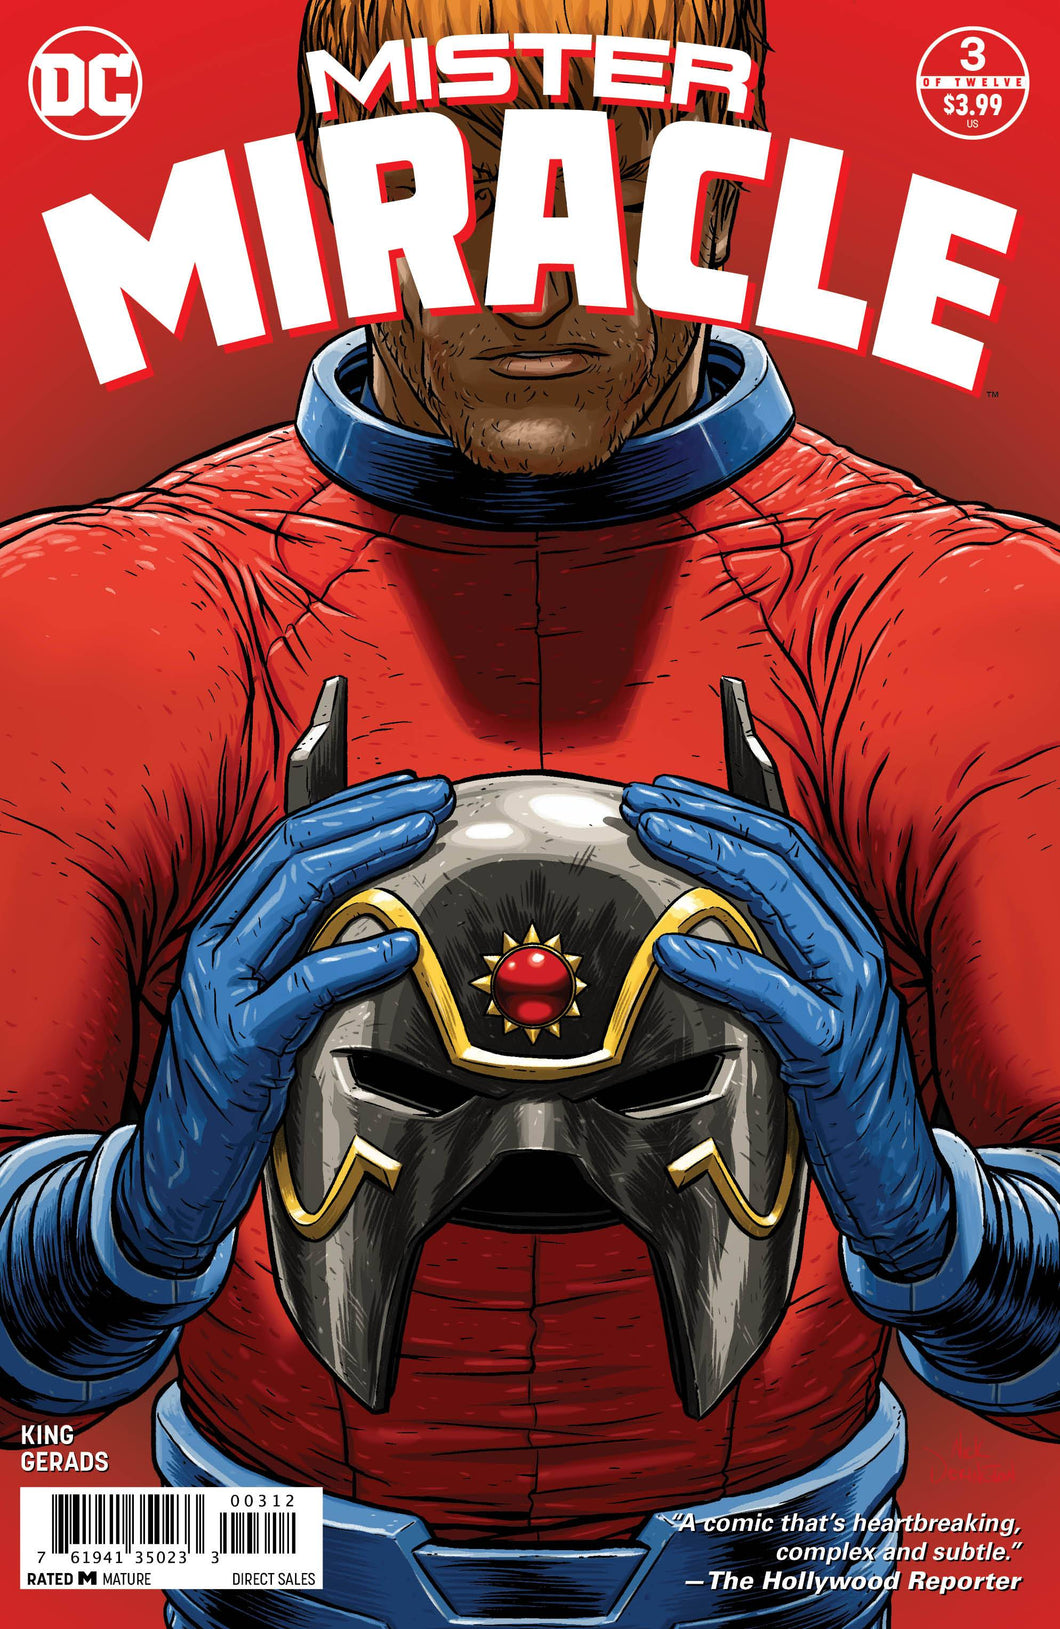 MISTER MIRACLE #3 (OF 12) 2ND PTG (MR) 02/17/18 RD